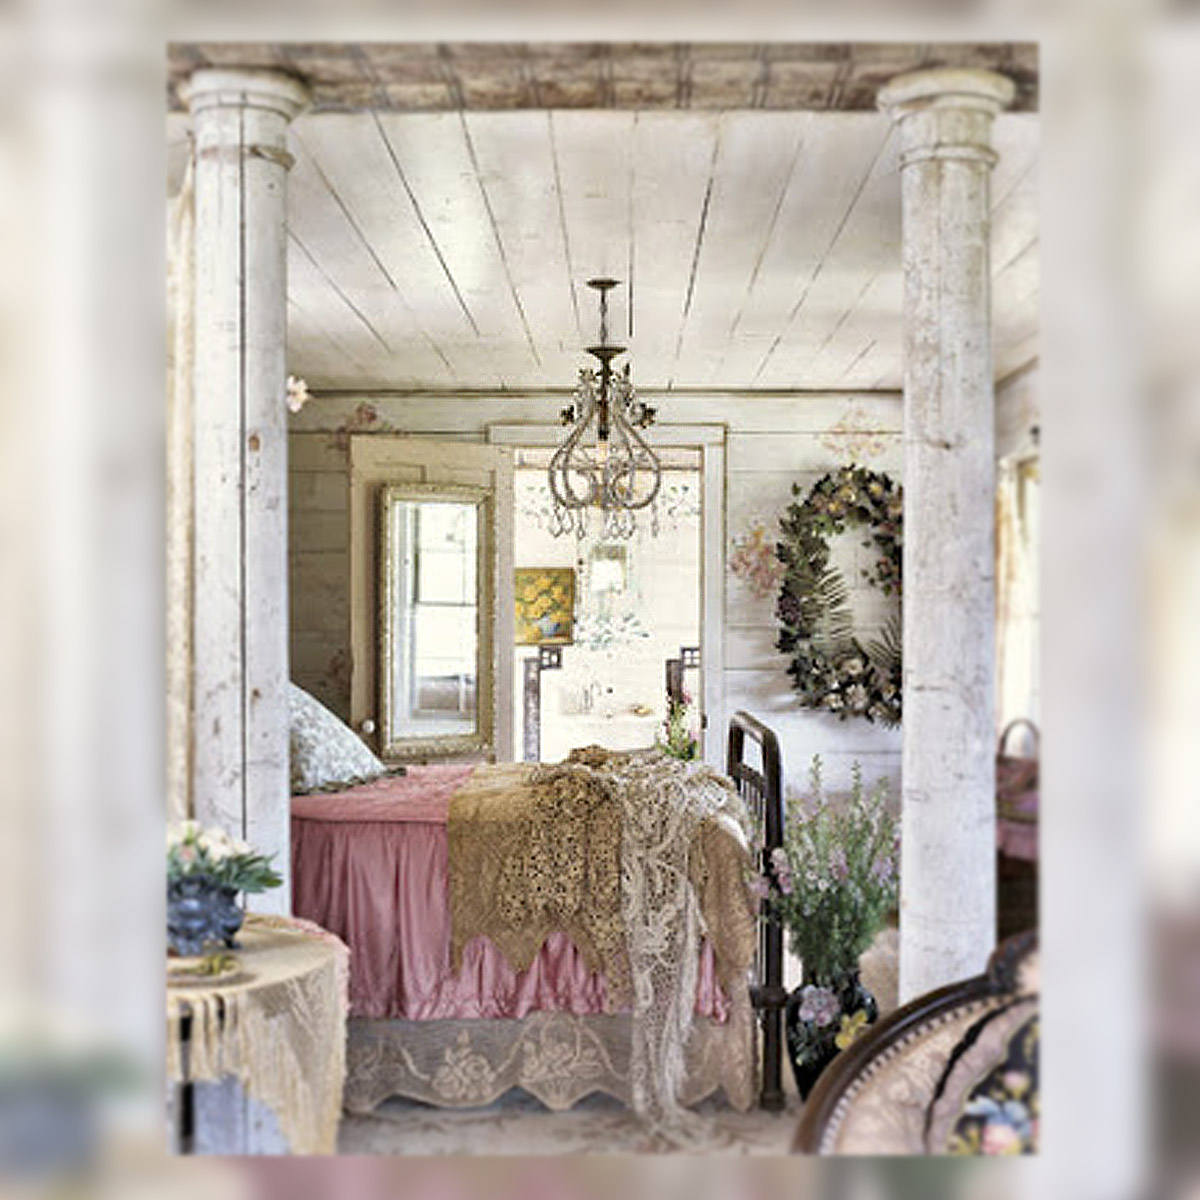 Vintage shabby chic rooms. keys to view more girl s rooms swipe ...